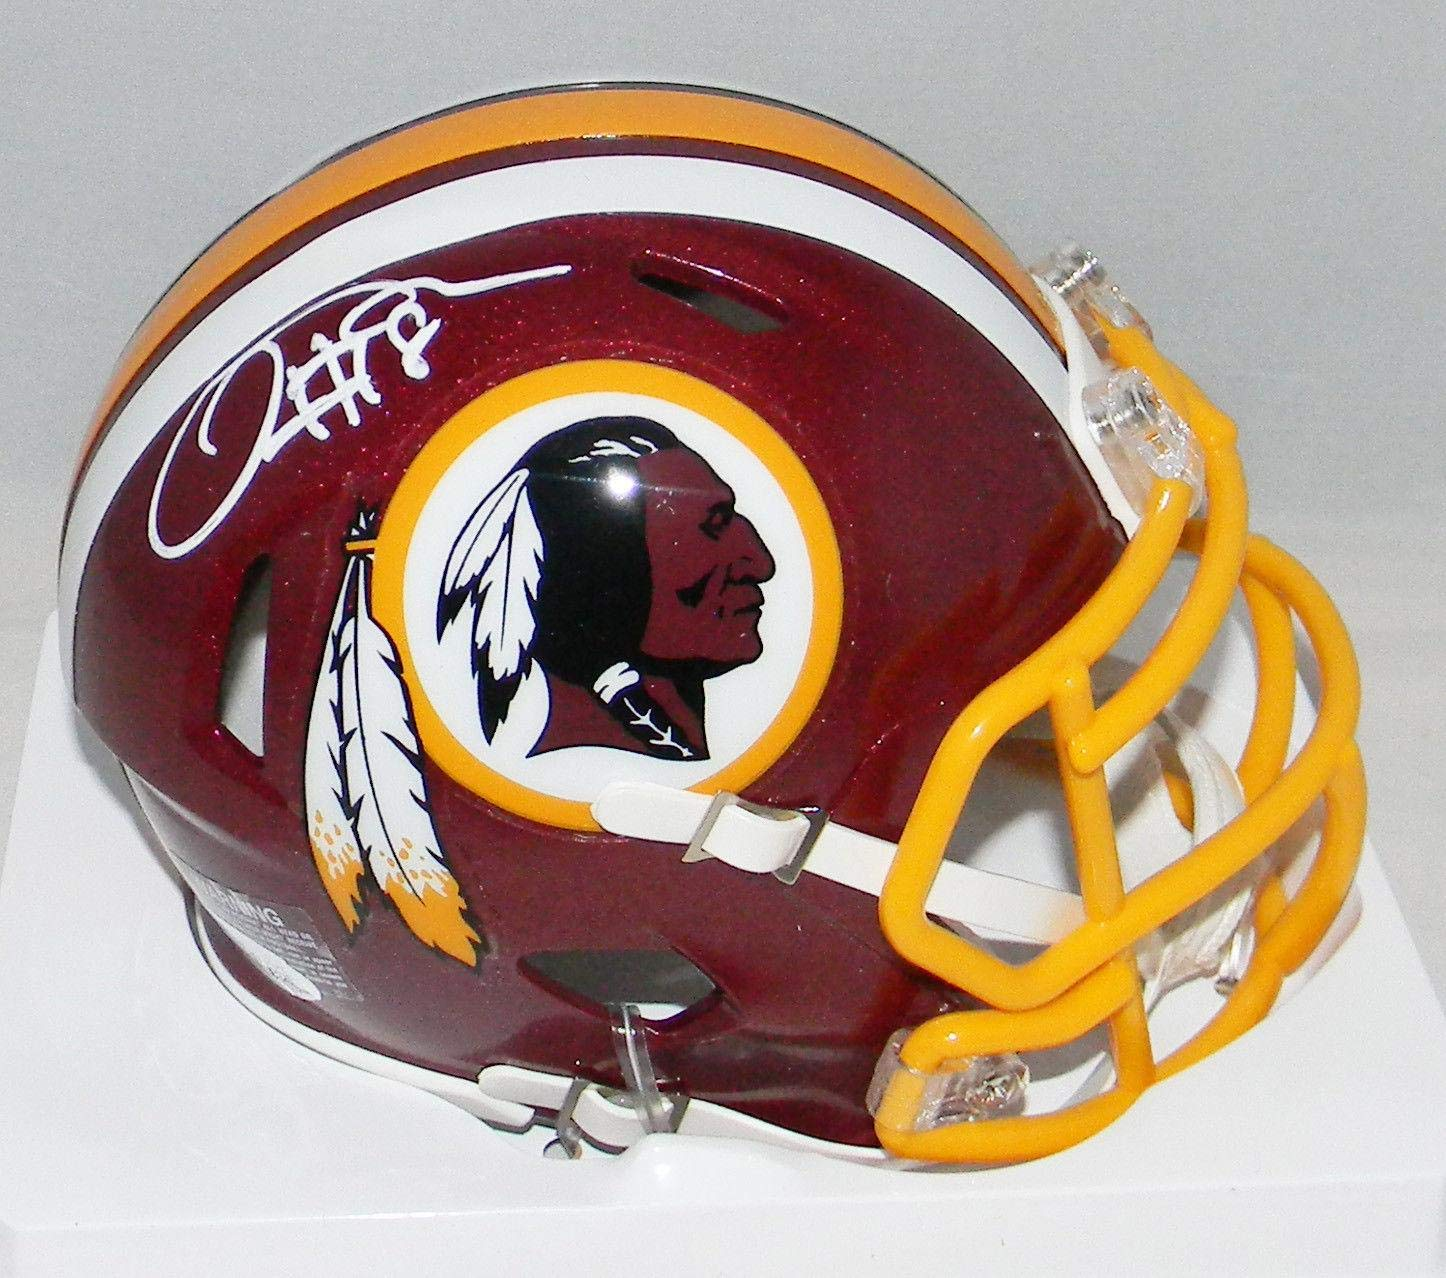 443f2af50a4 Amazon.com  Josh Doctson Signed Mini Helmet - Speed - JSA Certified - Autographed  NFL Mini Helmets  Sports Collectibles